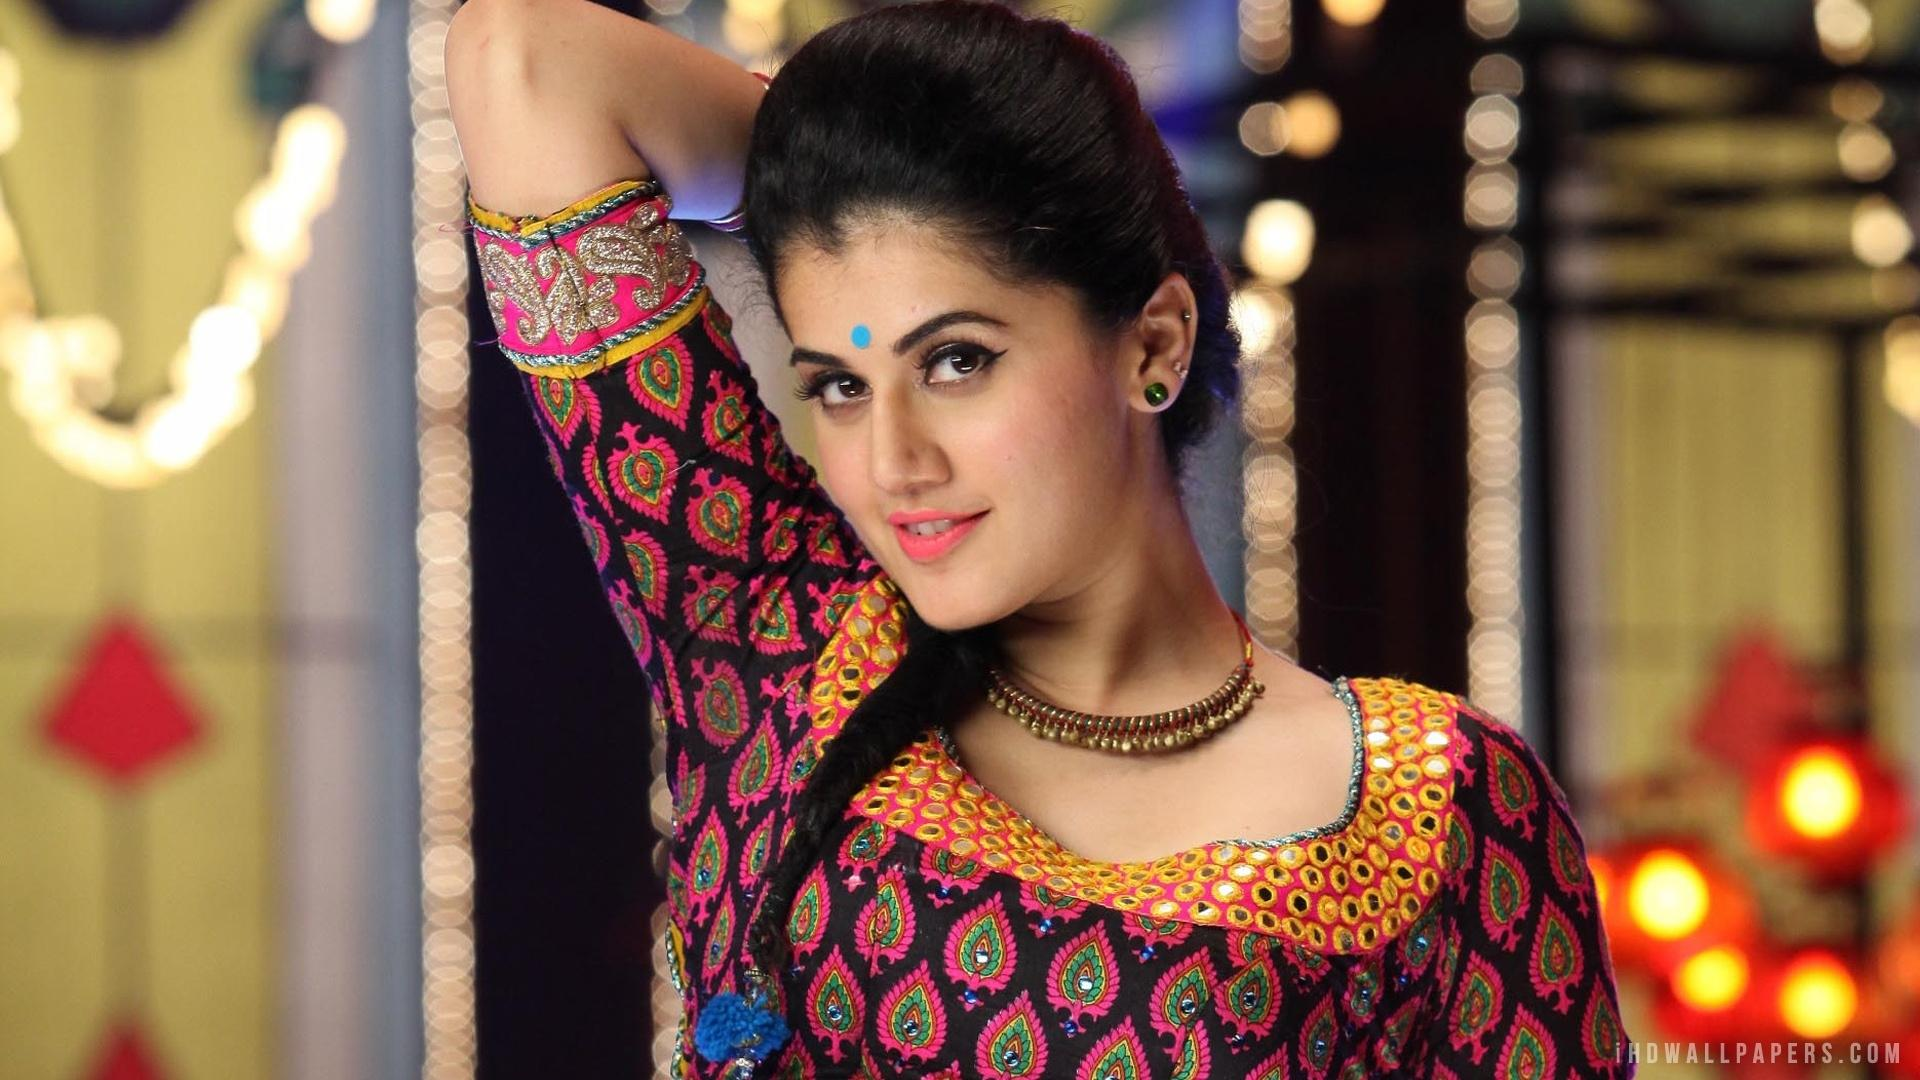 Beautiful Indian Girl Hd Wallpaper 1920 1080 Download Actress South Indian Movies 241593 Hd Wallpaper Backgrounds Download